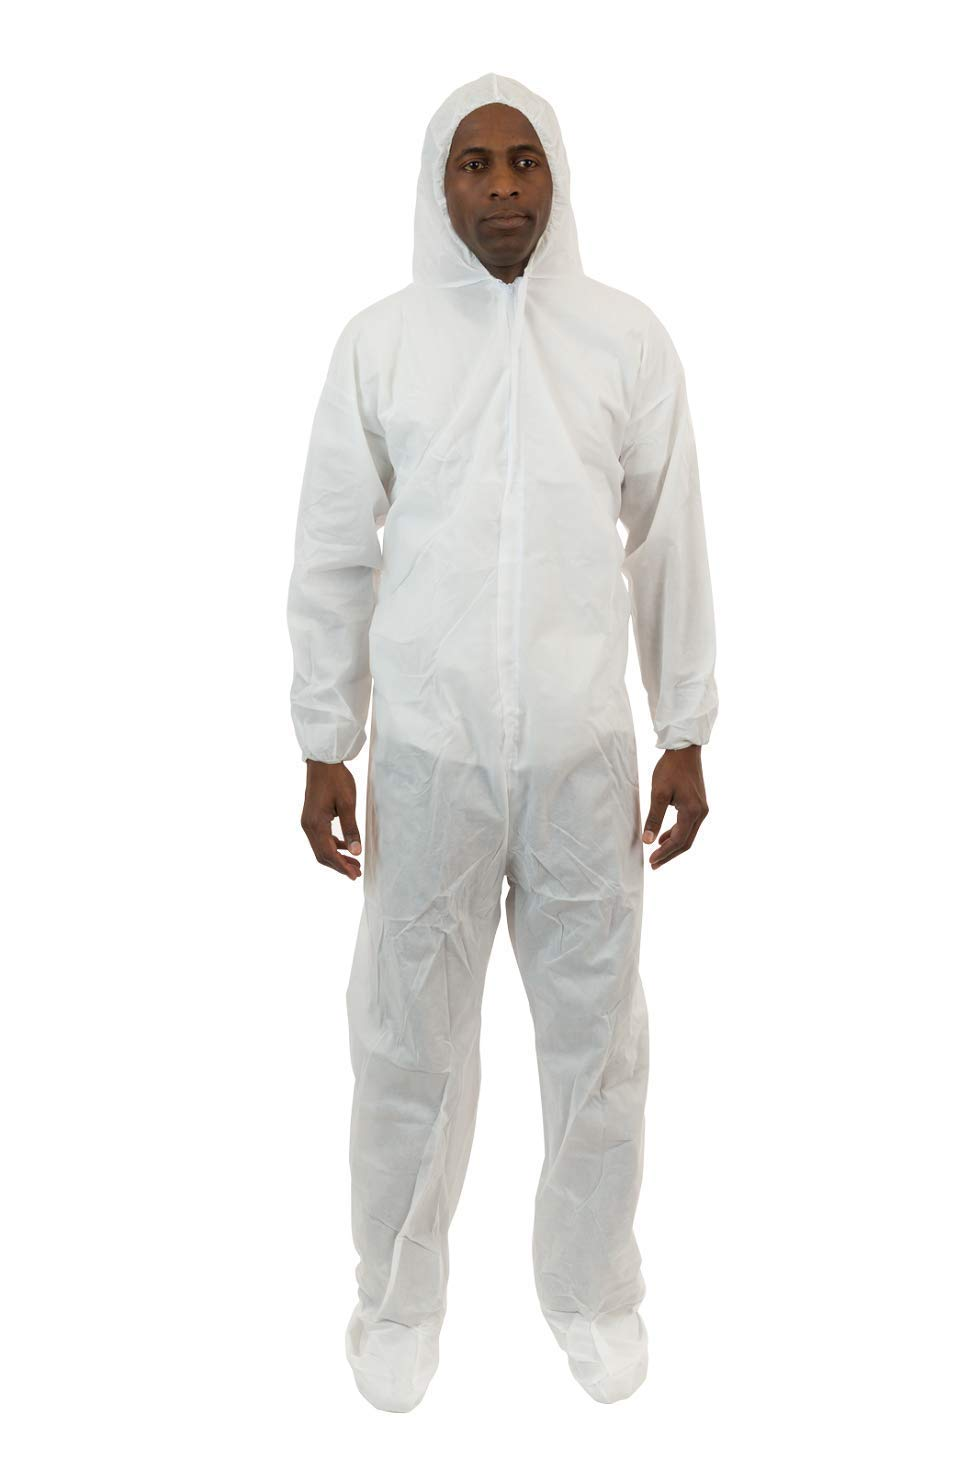 International Enviroguard - Standard Weight 3 Layer SMS General Protective Coverall for General Cleanup (White) (25 per case) (5XL, Elastic Wrist, Hood & Boots)